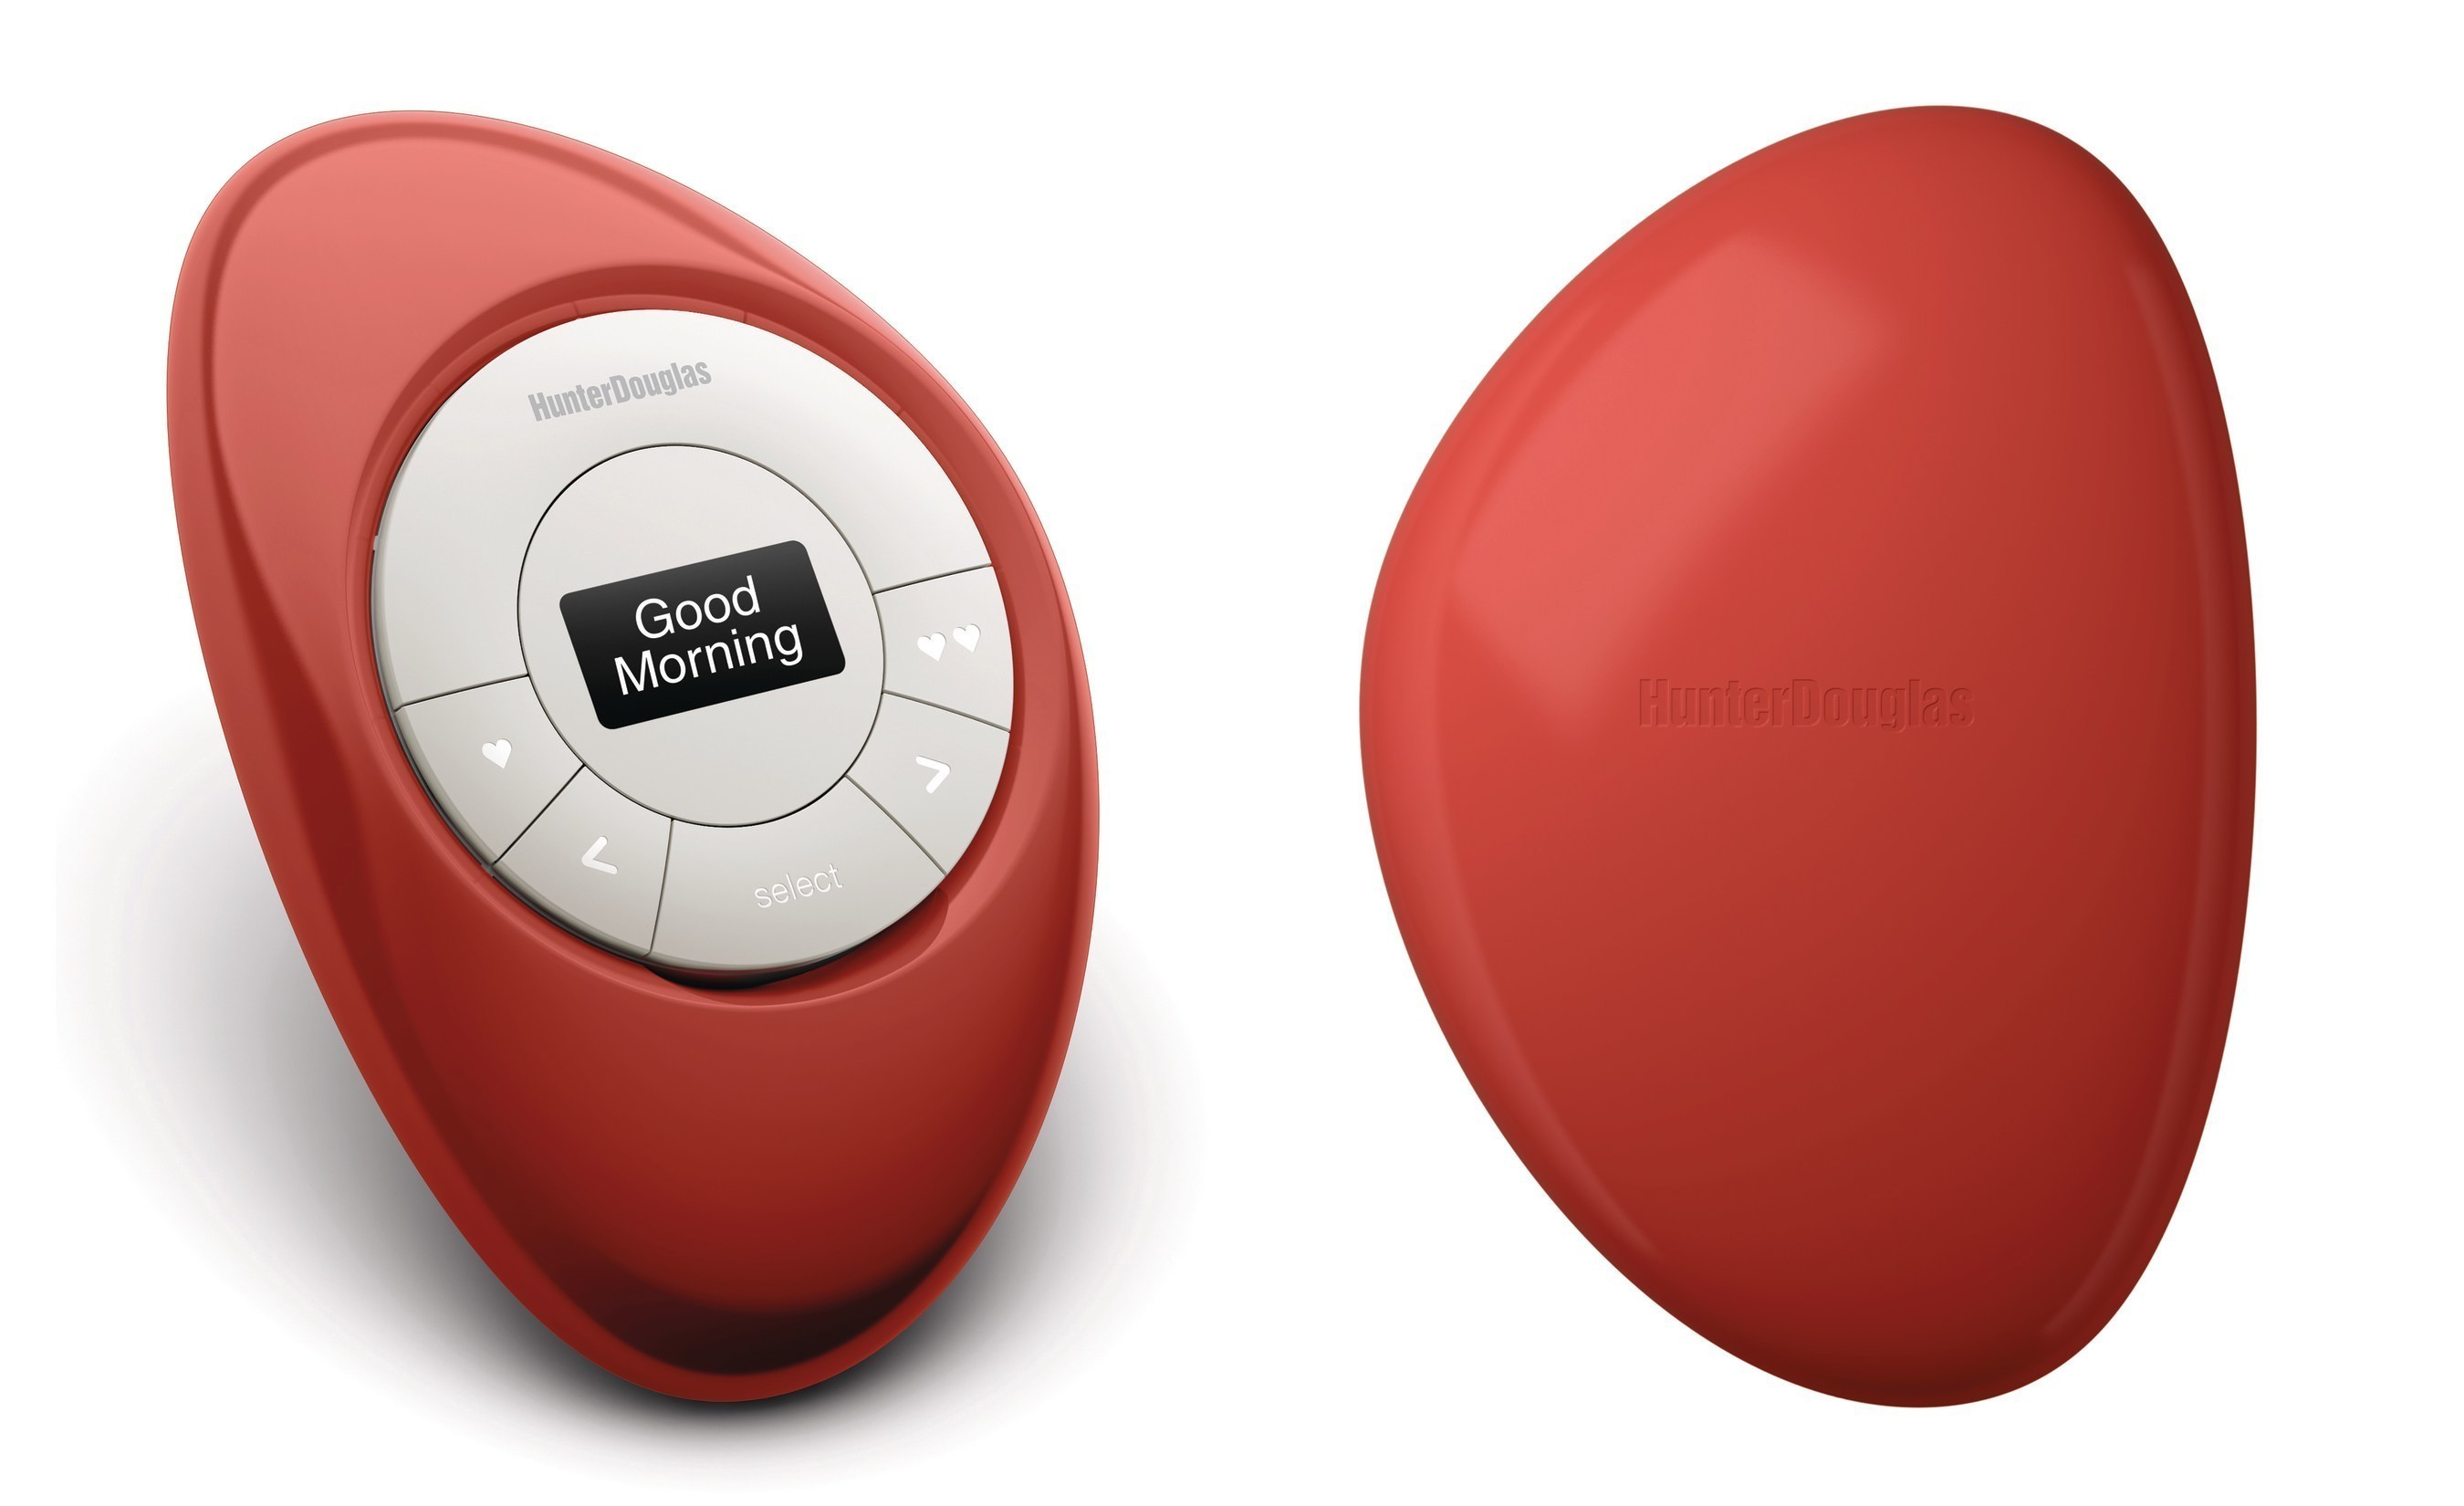 Hunter Douglas PowerView(TM) Scene Controller in Poppy